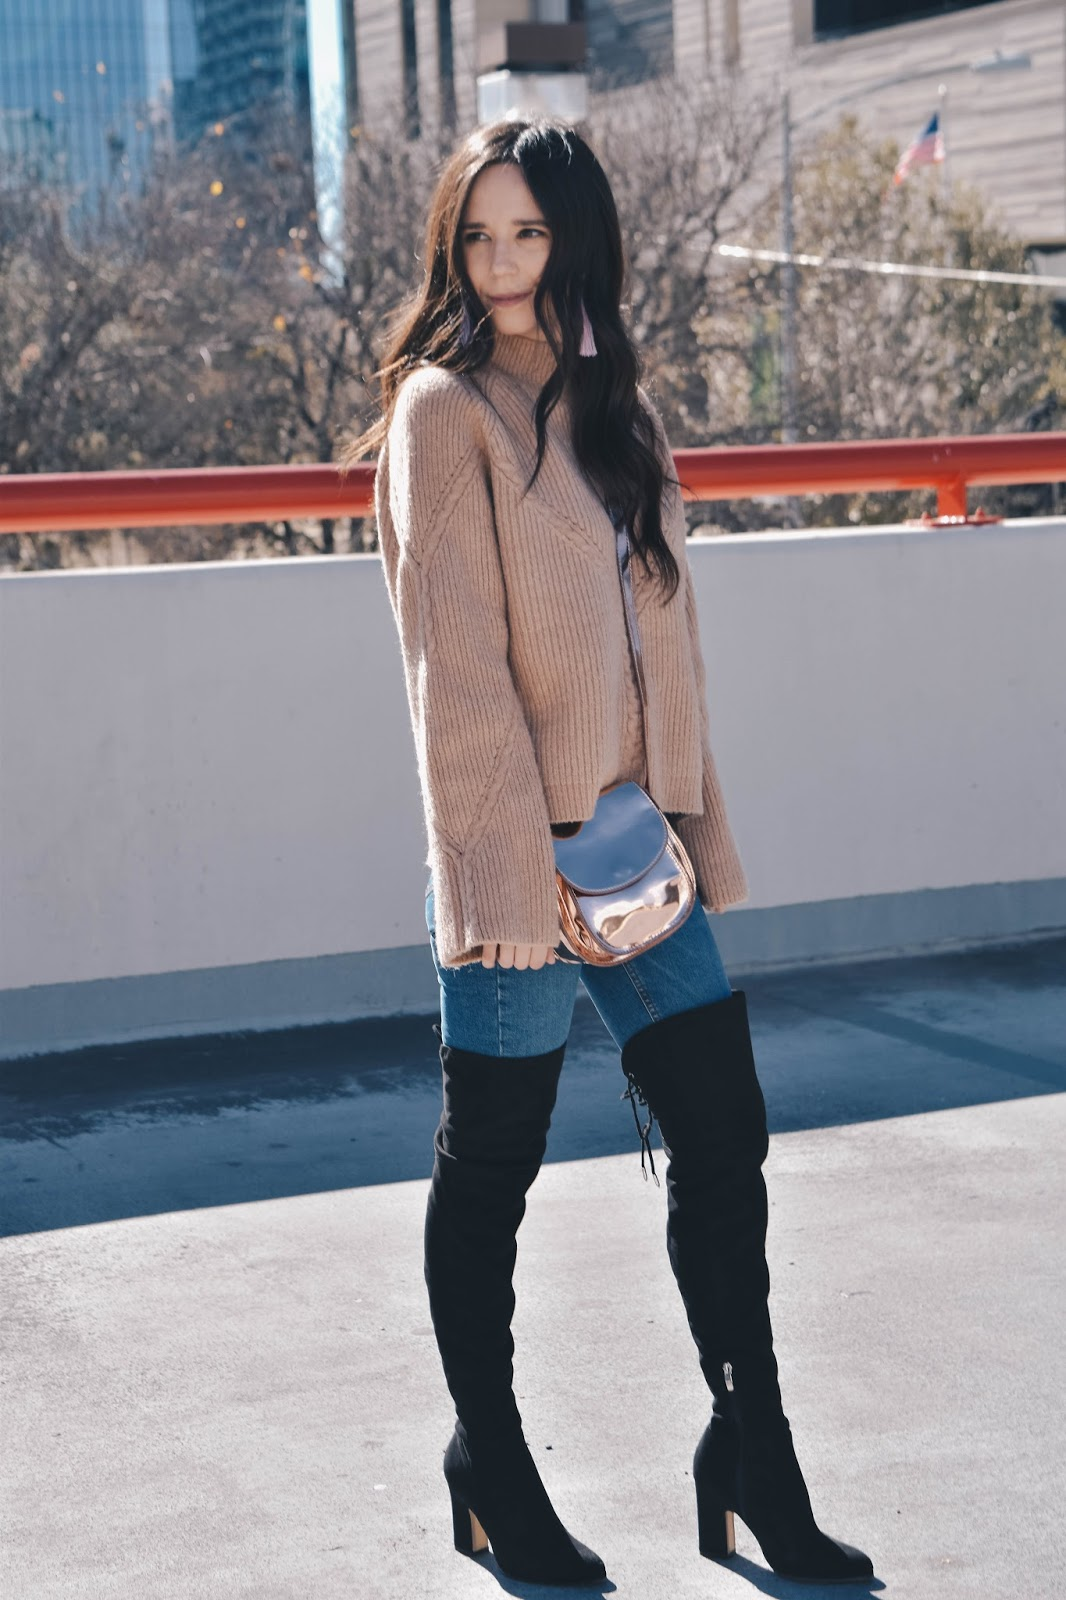 Sweater and knee high boots